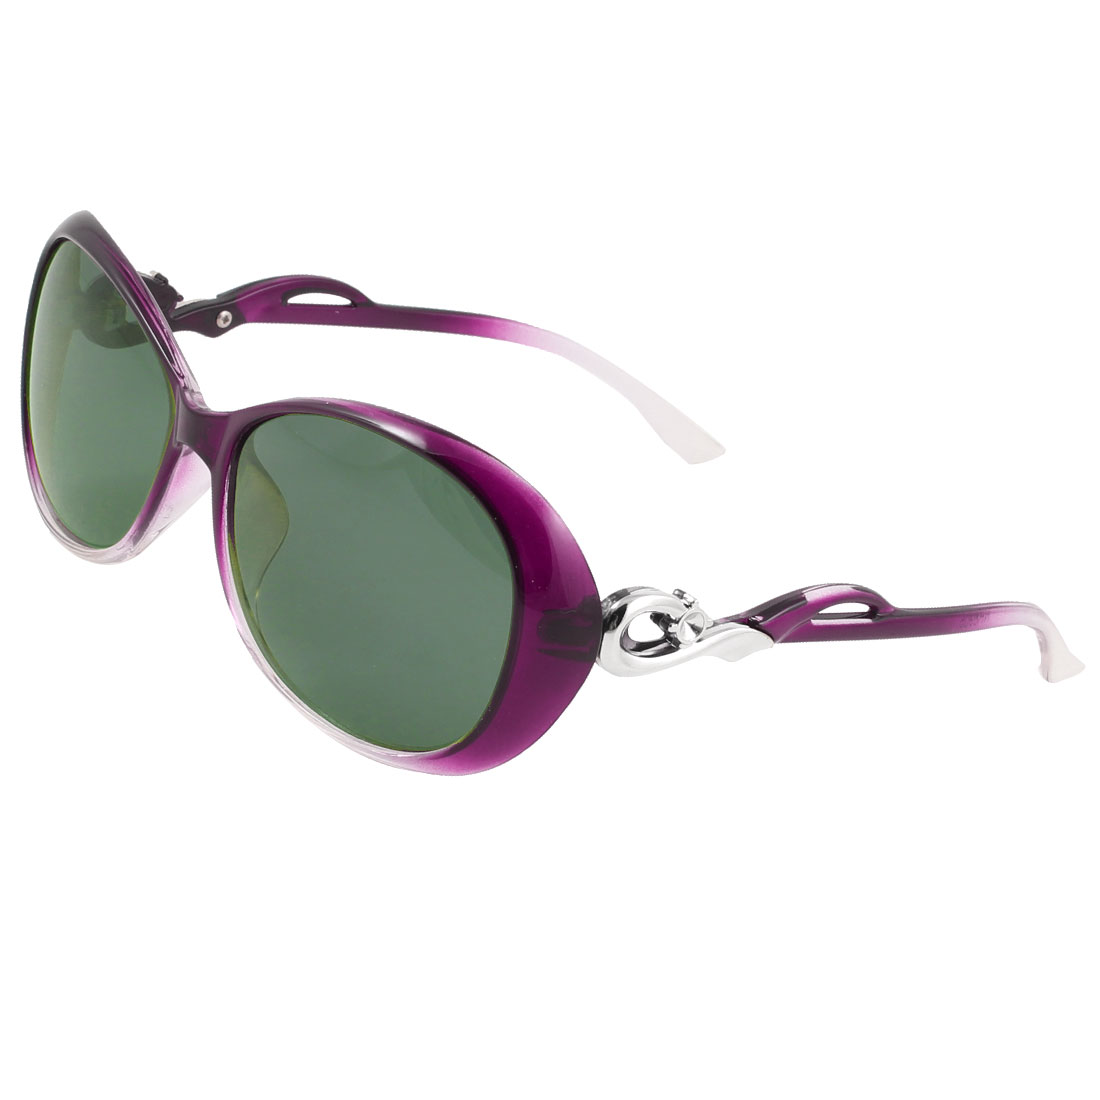 Purple Plastic Full Rim Driving Polarized Sunglasses for Ladies Women